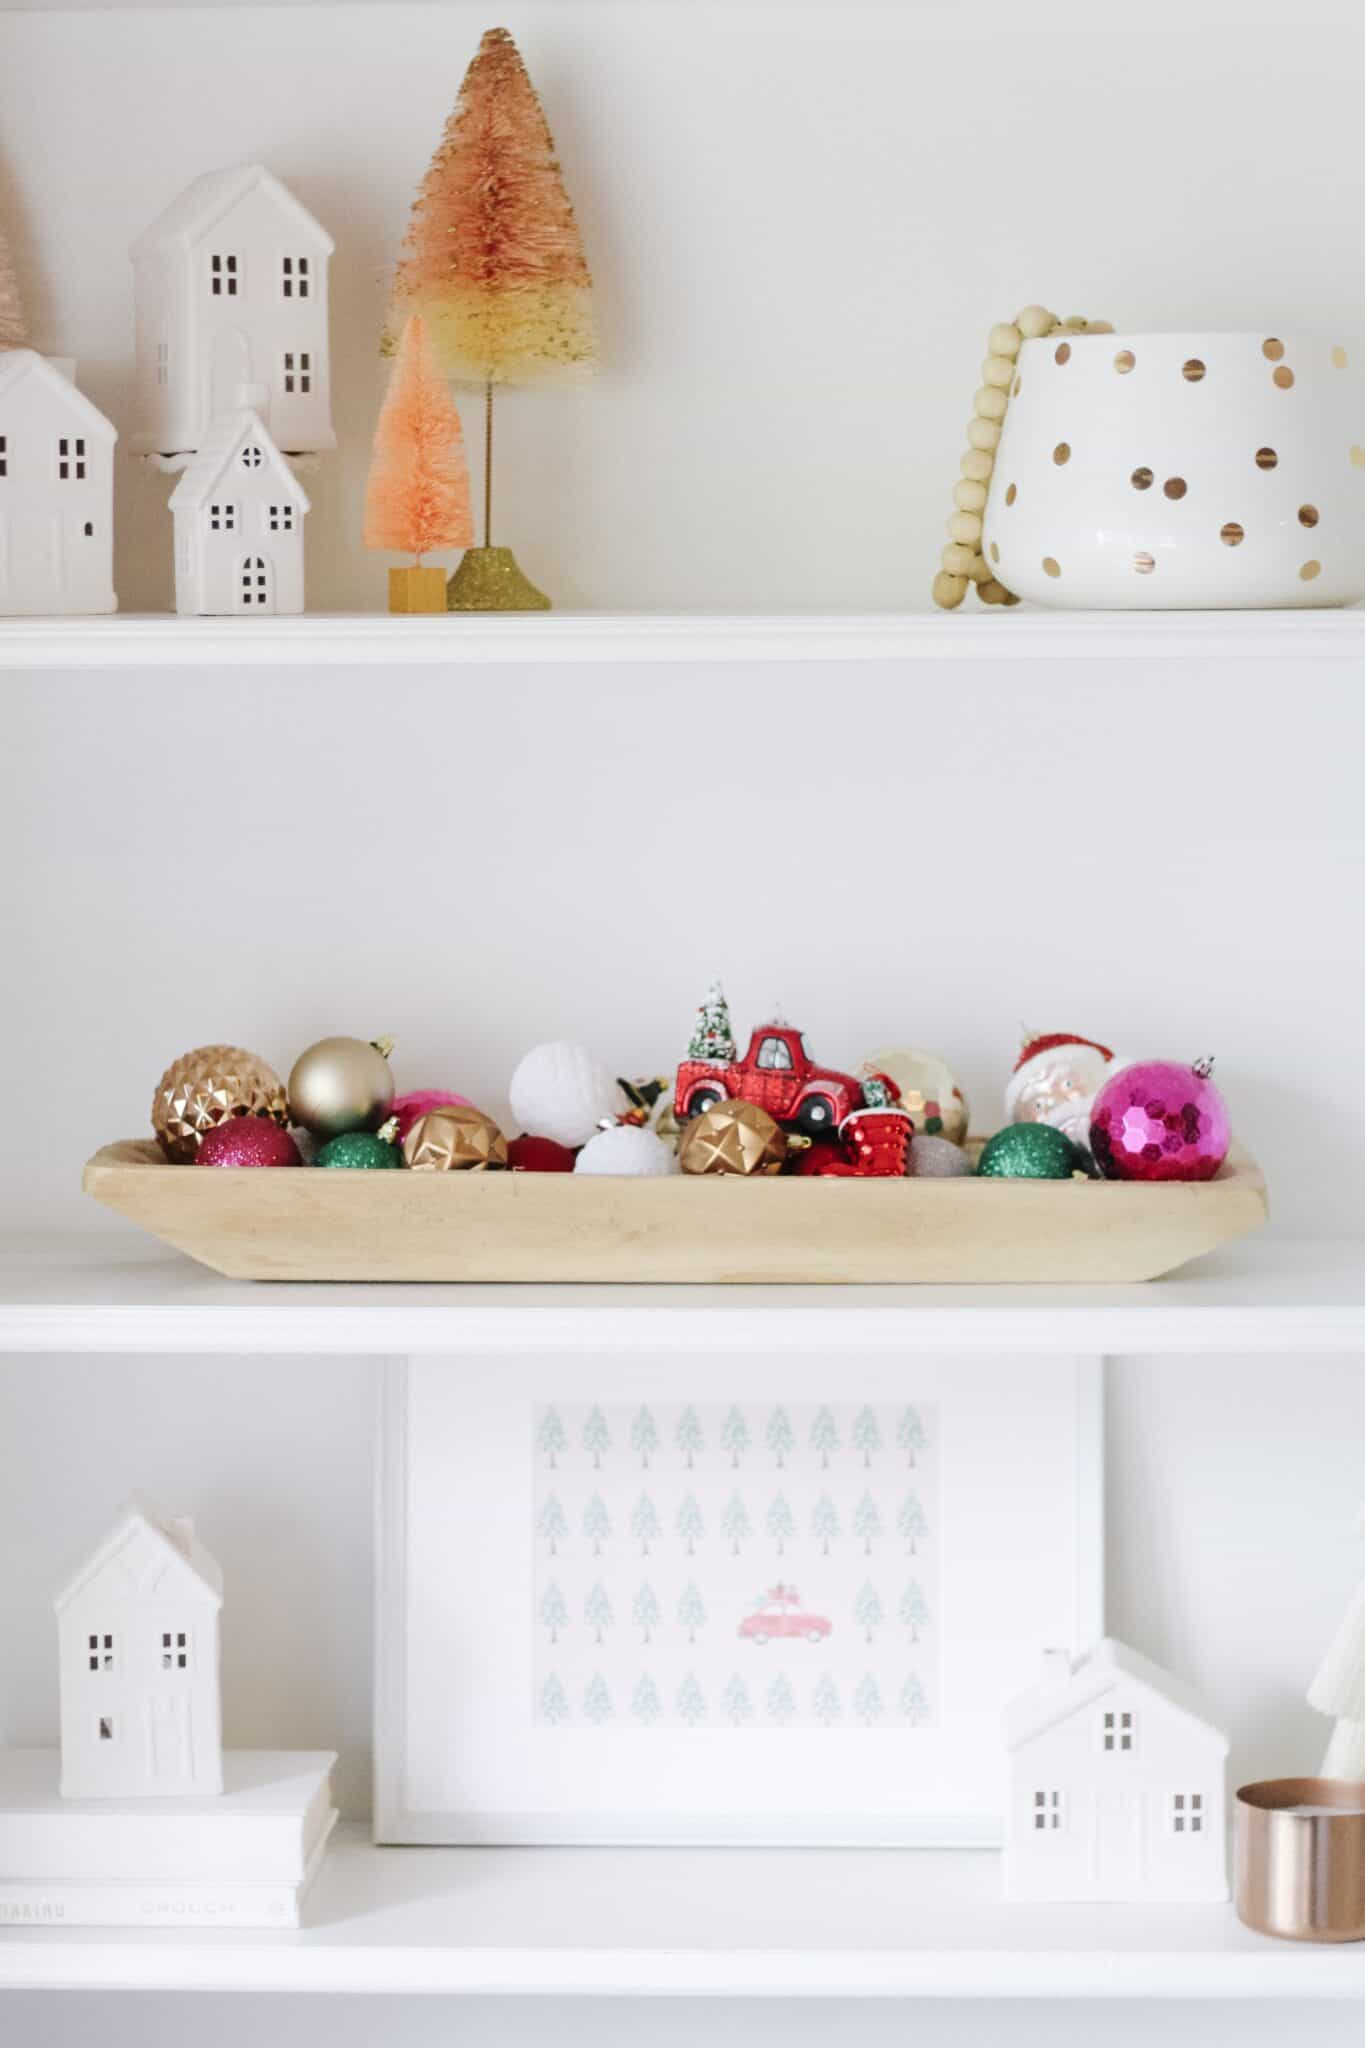 Wood bowl with ornaments on built in shelves